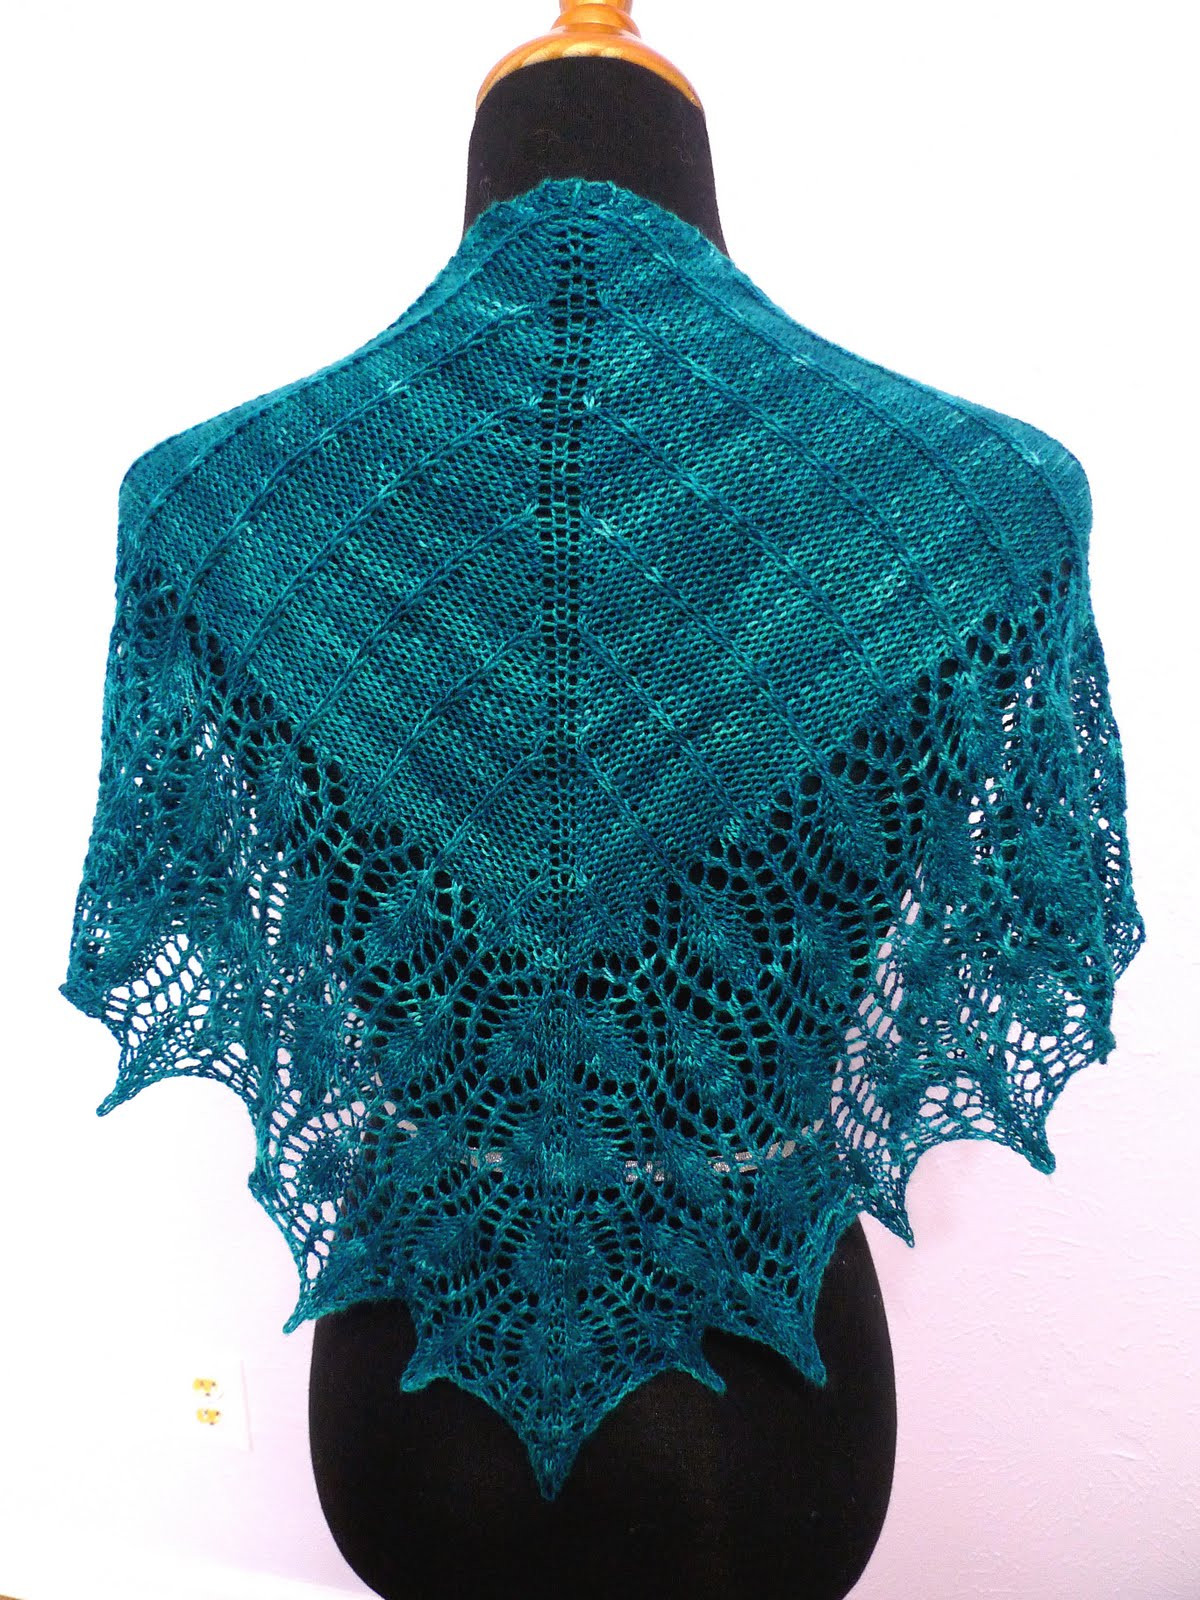 Lovely Knit Your Love Peacock Shawlette N Shawl Ebook Peacock Shawl Of Charming 44 Pictures Peacock Shawl